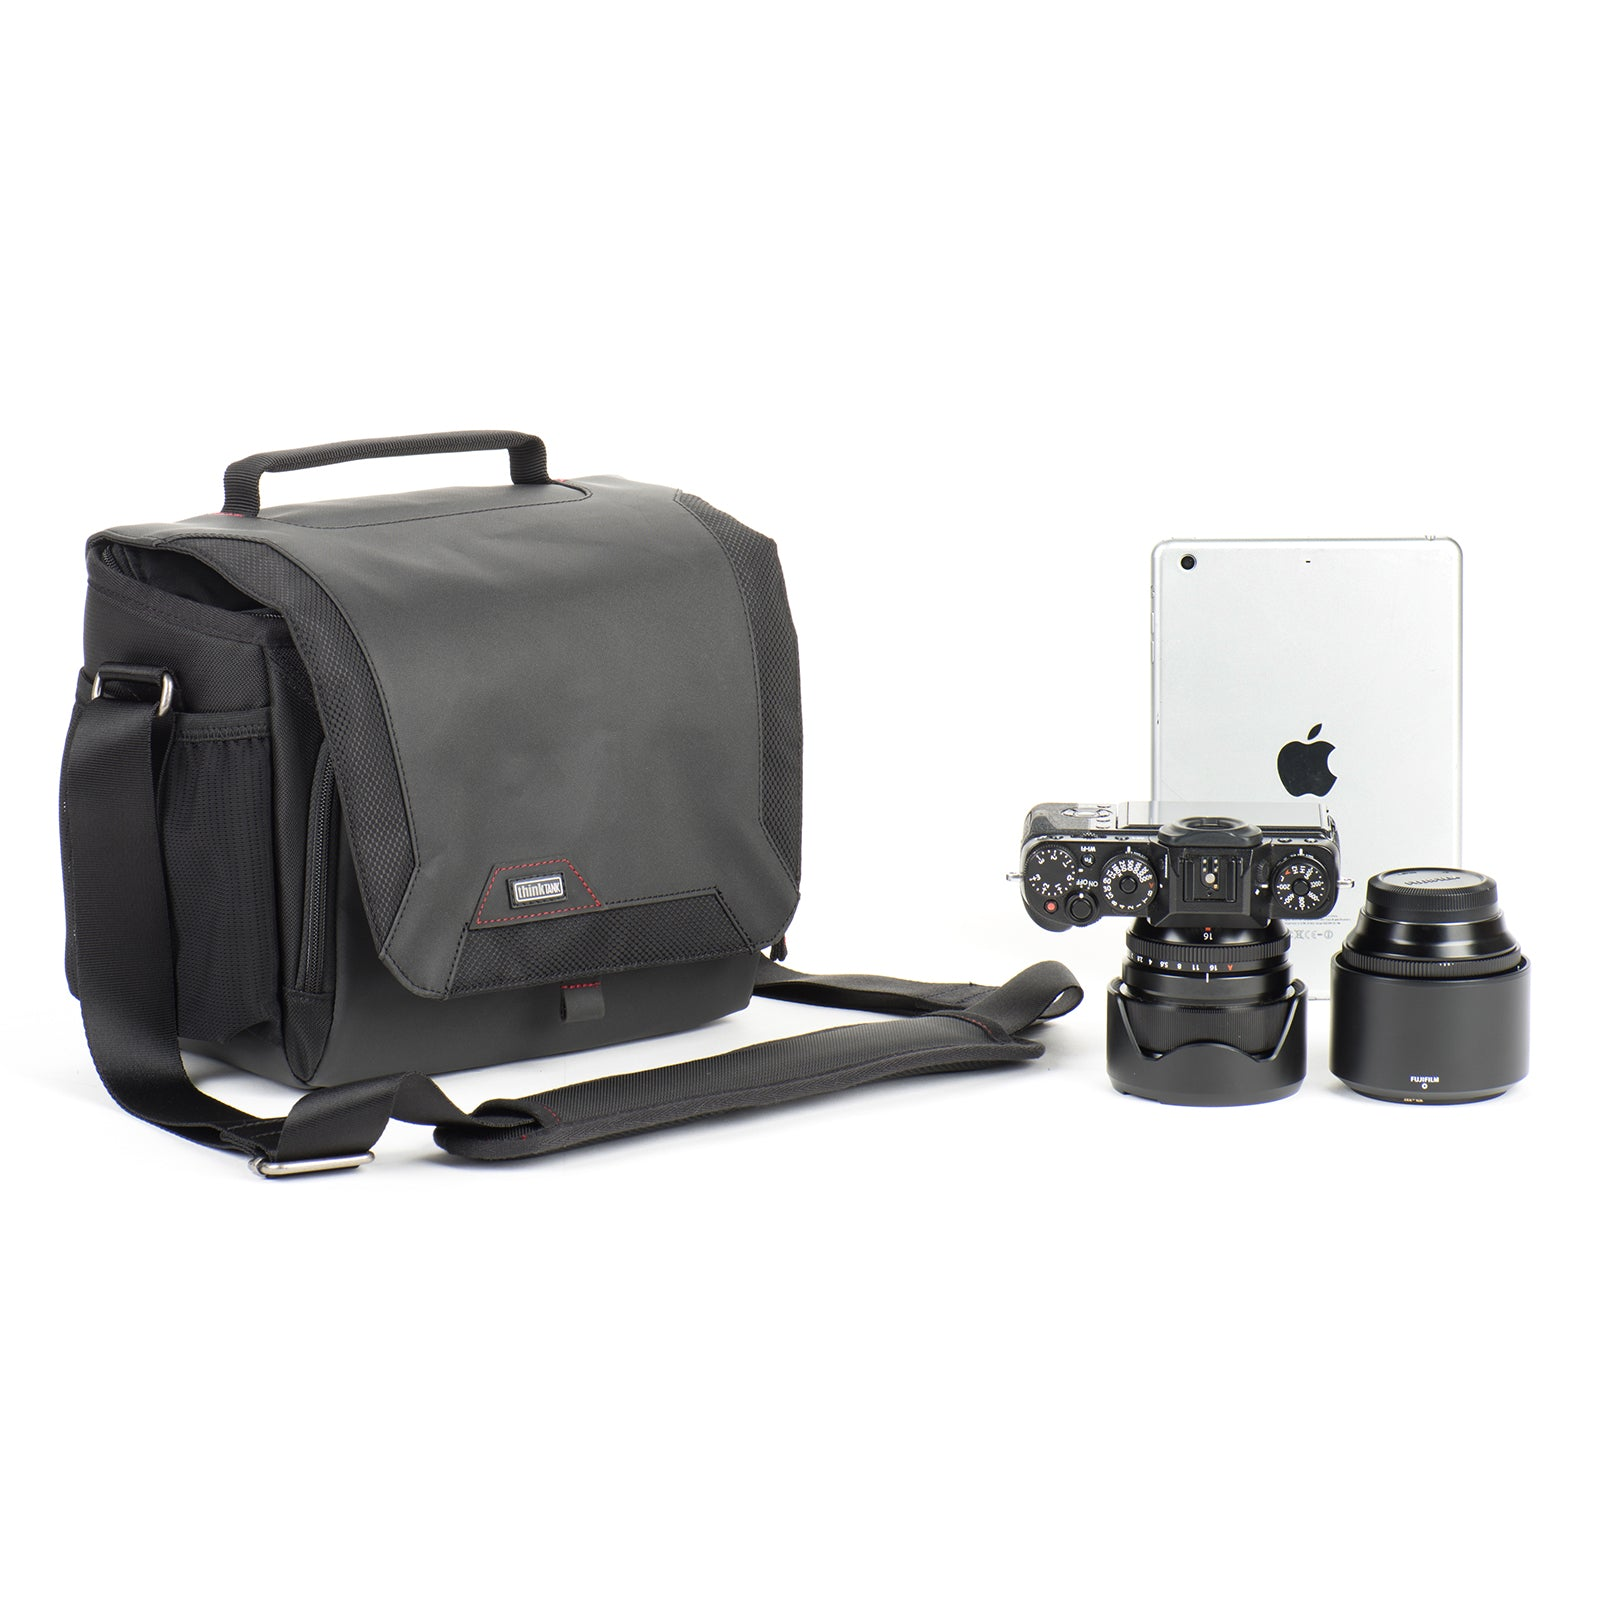 6c4b27d364 Spectral 8- Best full-featured camera shoulder bag for the price • Think  Tank Photo